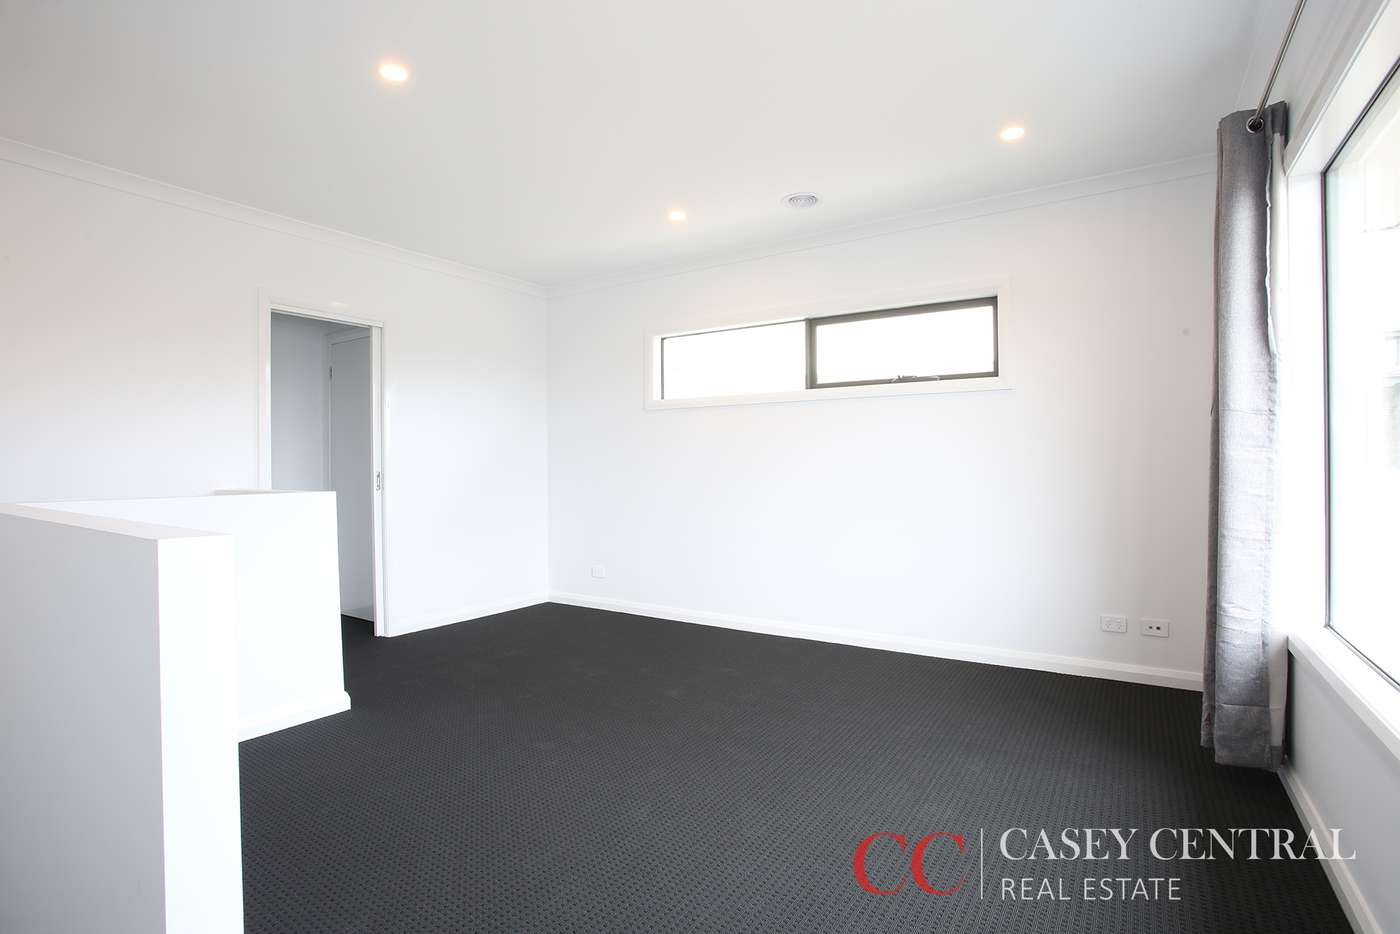 Sixth view of Homely house listing, 10 Butina Crest, Pakenham VIC 3810